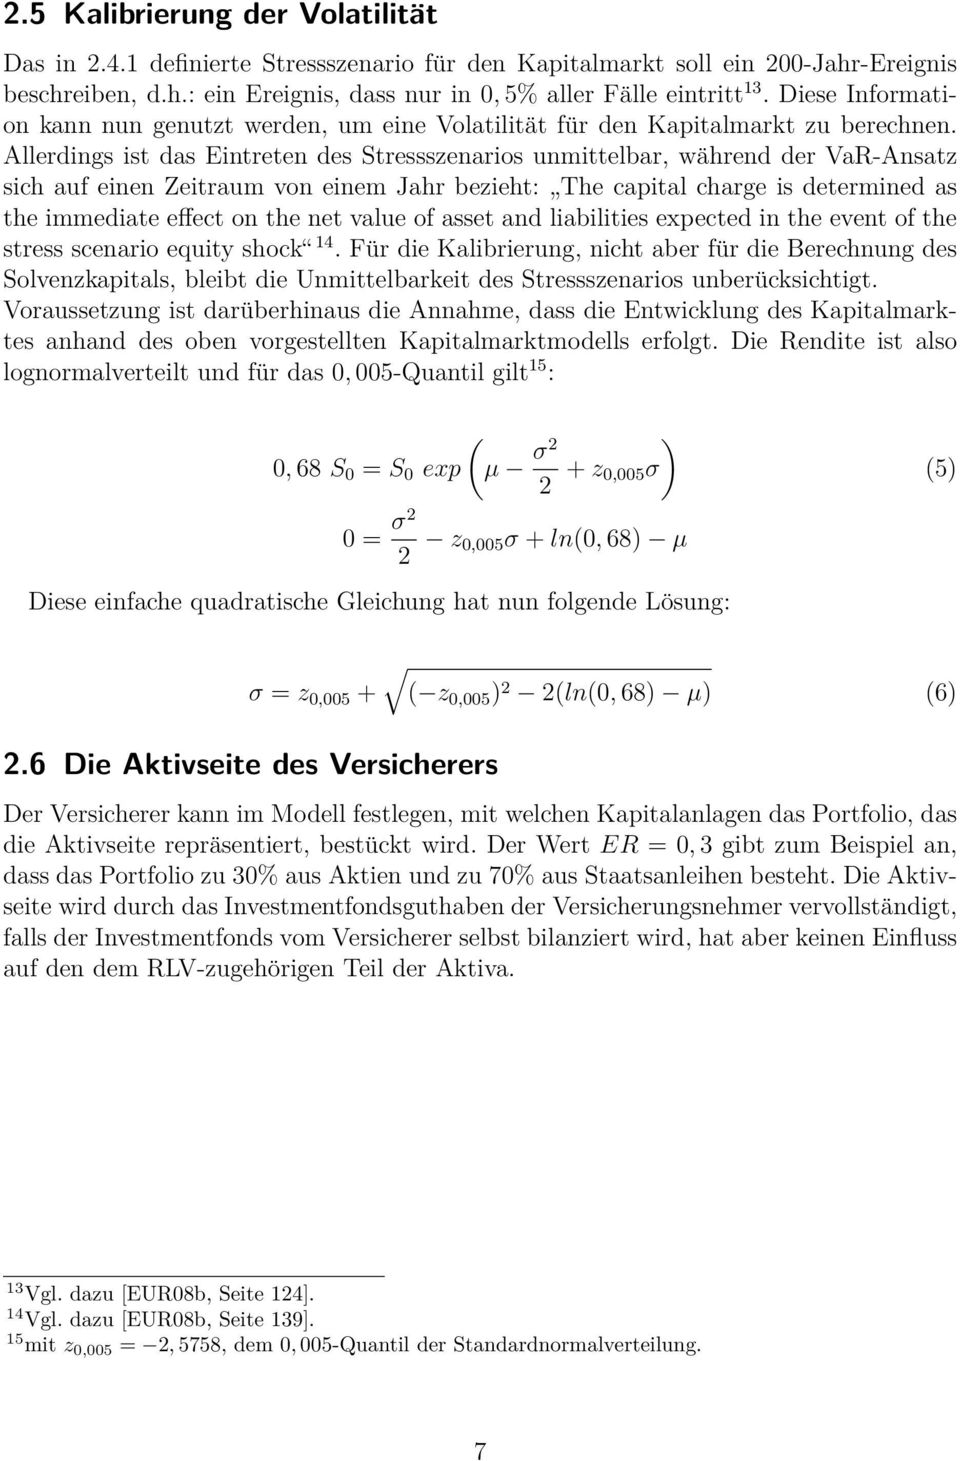 Allerdings ist das Eintreten des Stressszenarios unmittelbar, während der VaR-Ansatz sich auf einen Zeitraum von einem Jahr bezieht: The capital charge is determined as the immediate effect on the